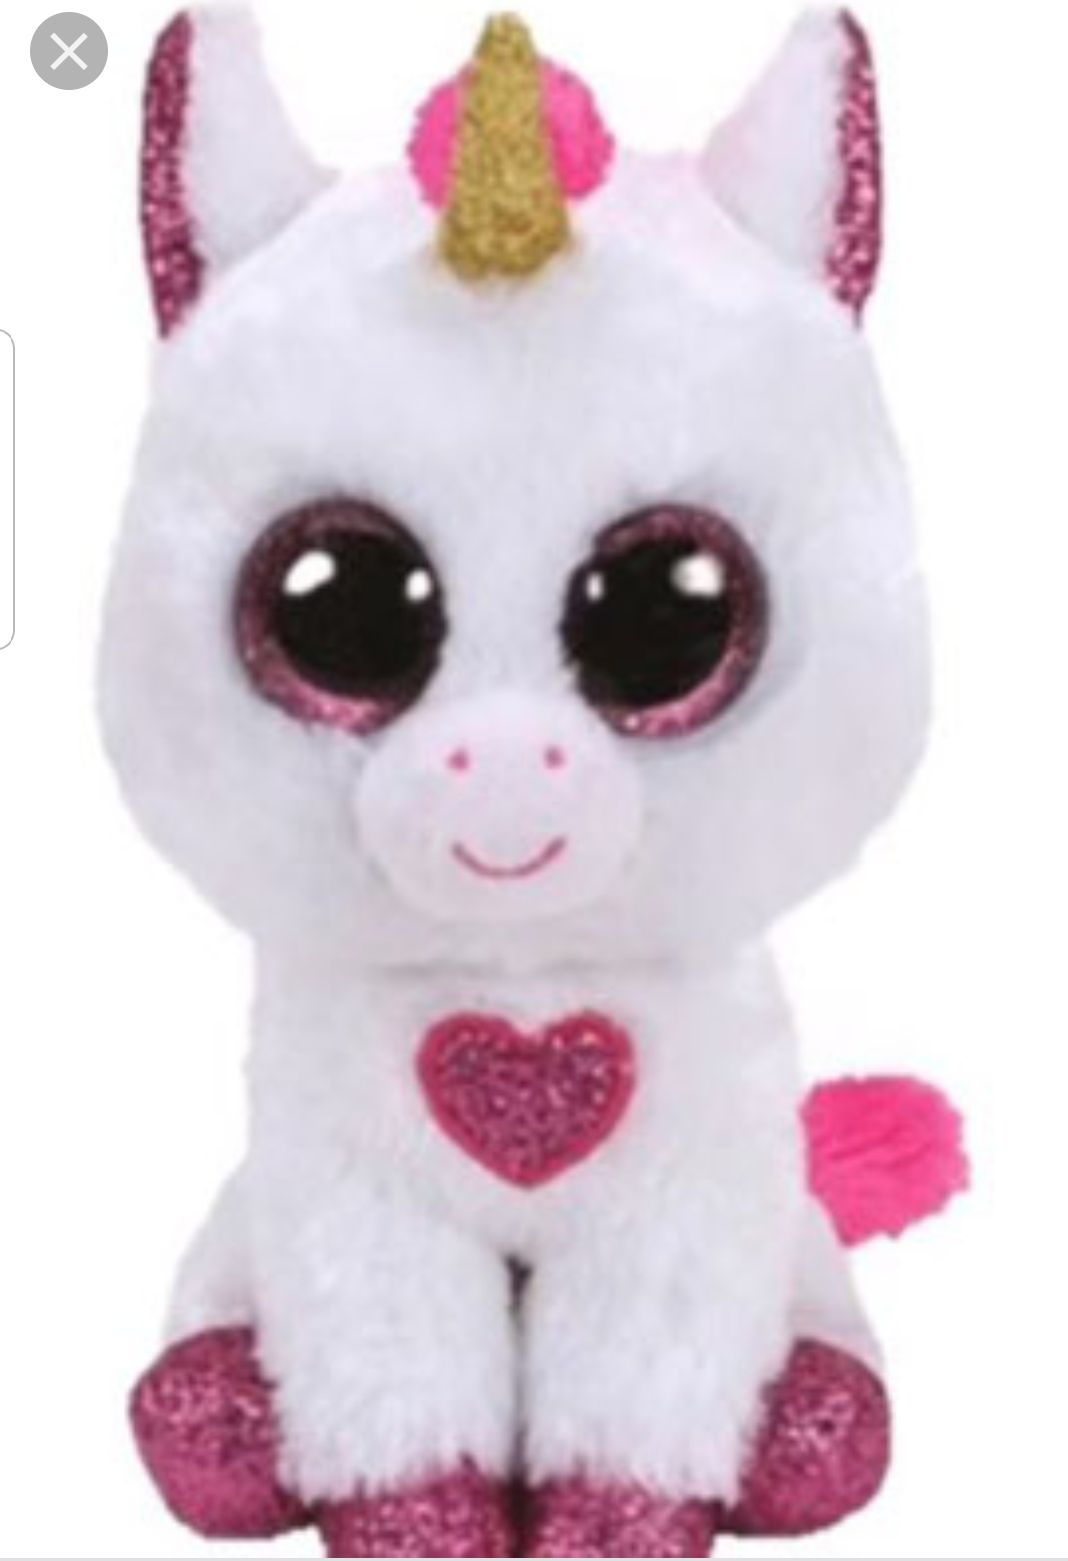 Cherie Beanie Baby - White (36441) back image (back cover, second image)